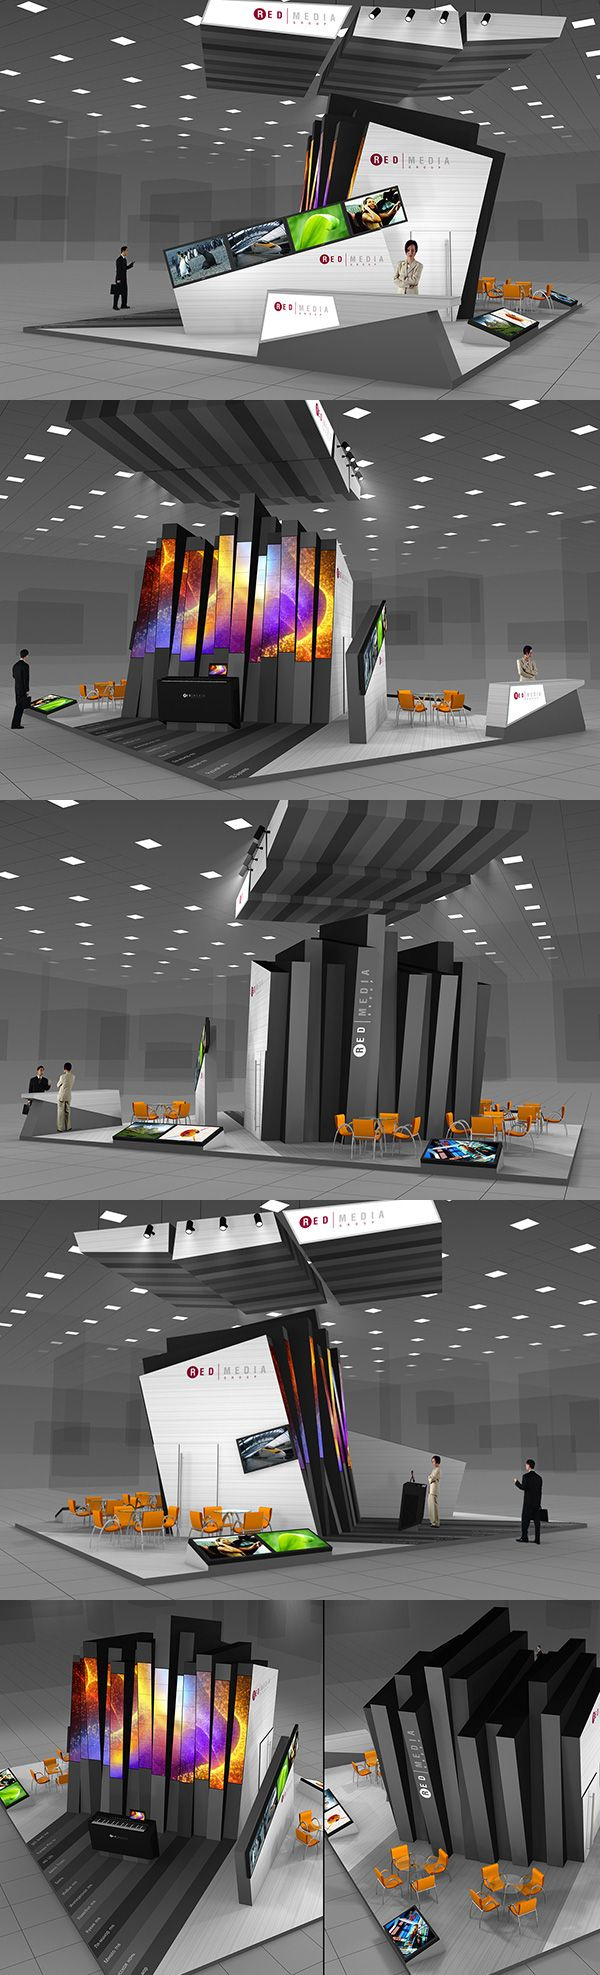 Exhibition Stand Elements : A stand out booth with extraordinary architectural